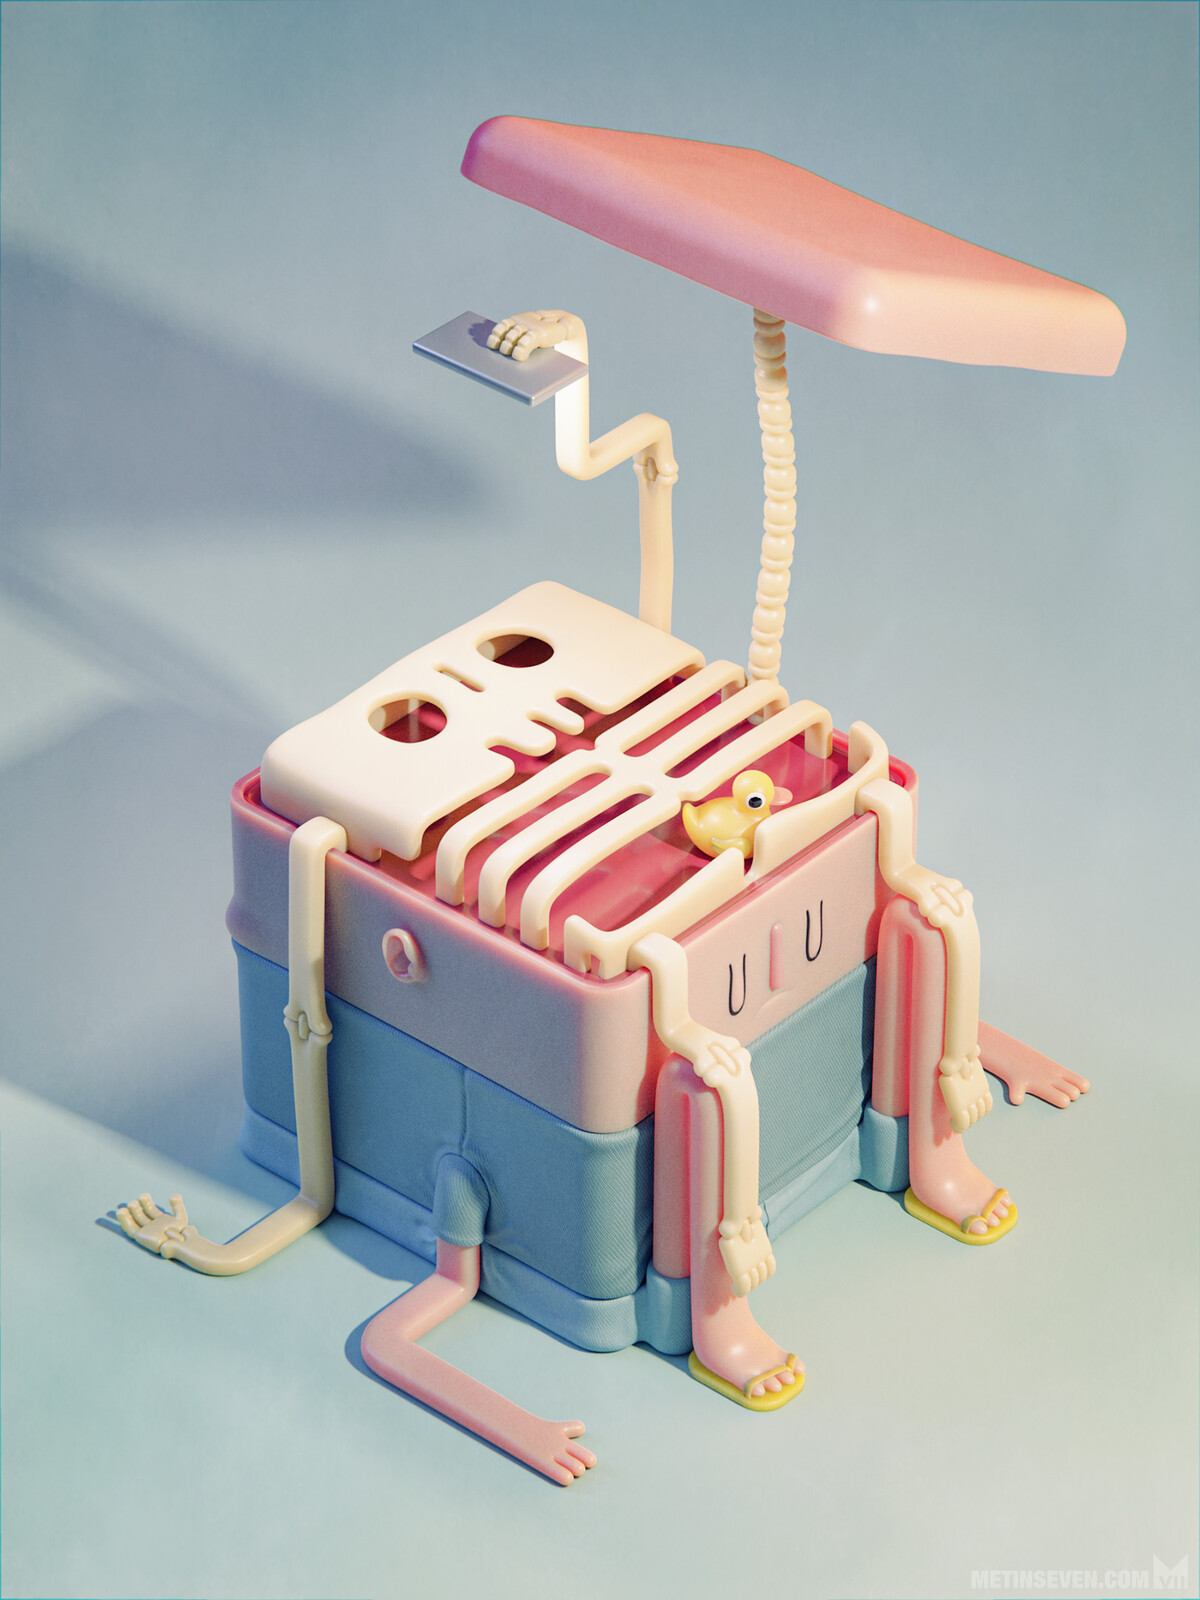 Isometric 3D illustrations